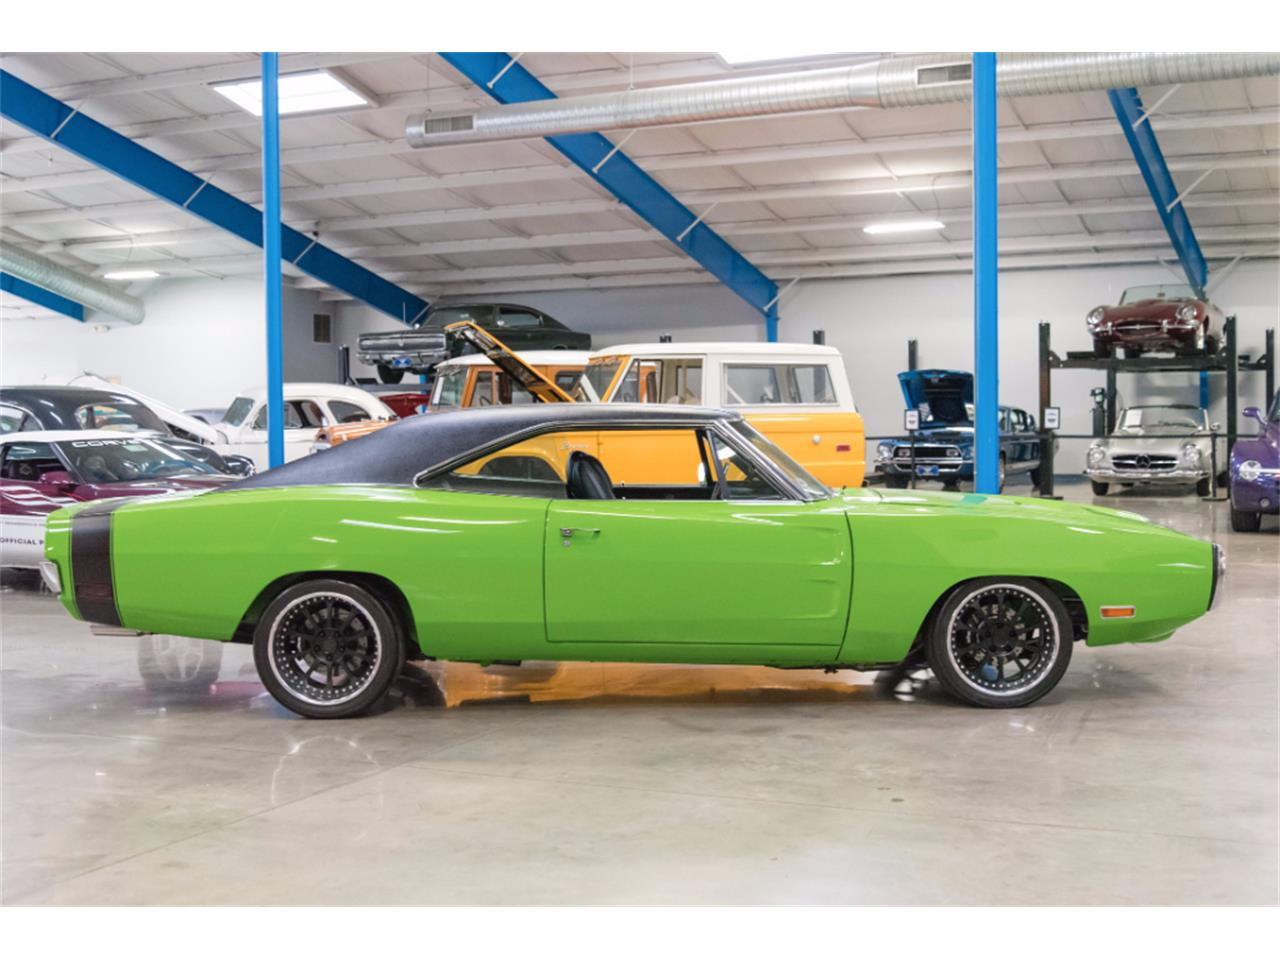 Large Picture of '70 Dodge Charger located in Salem Ohio - $135,000.00 Offered by John Kufleitner's Galleria - MB1Z